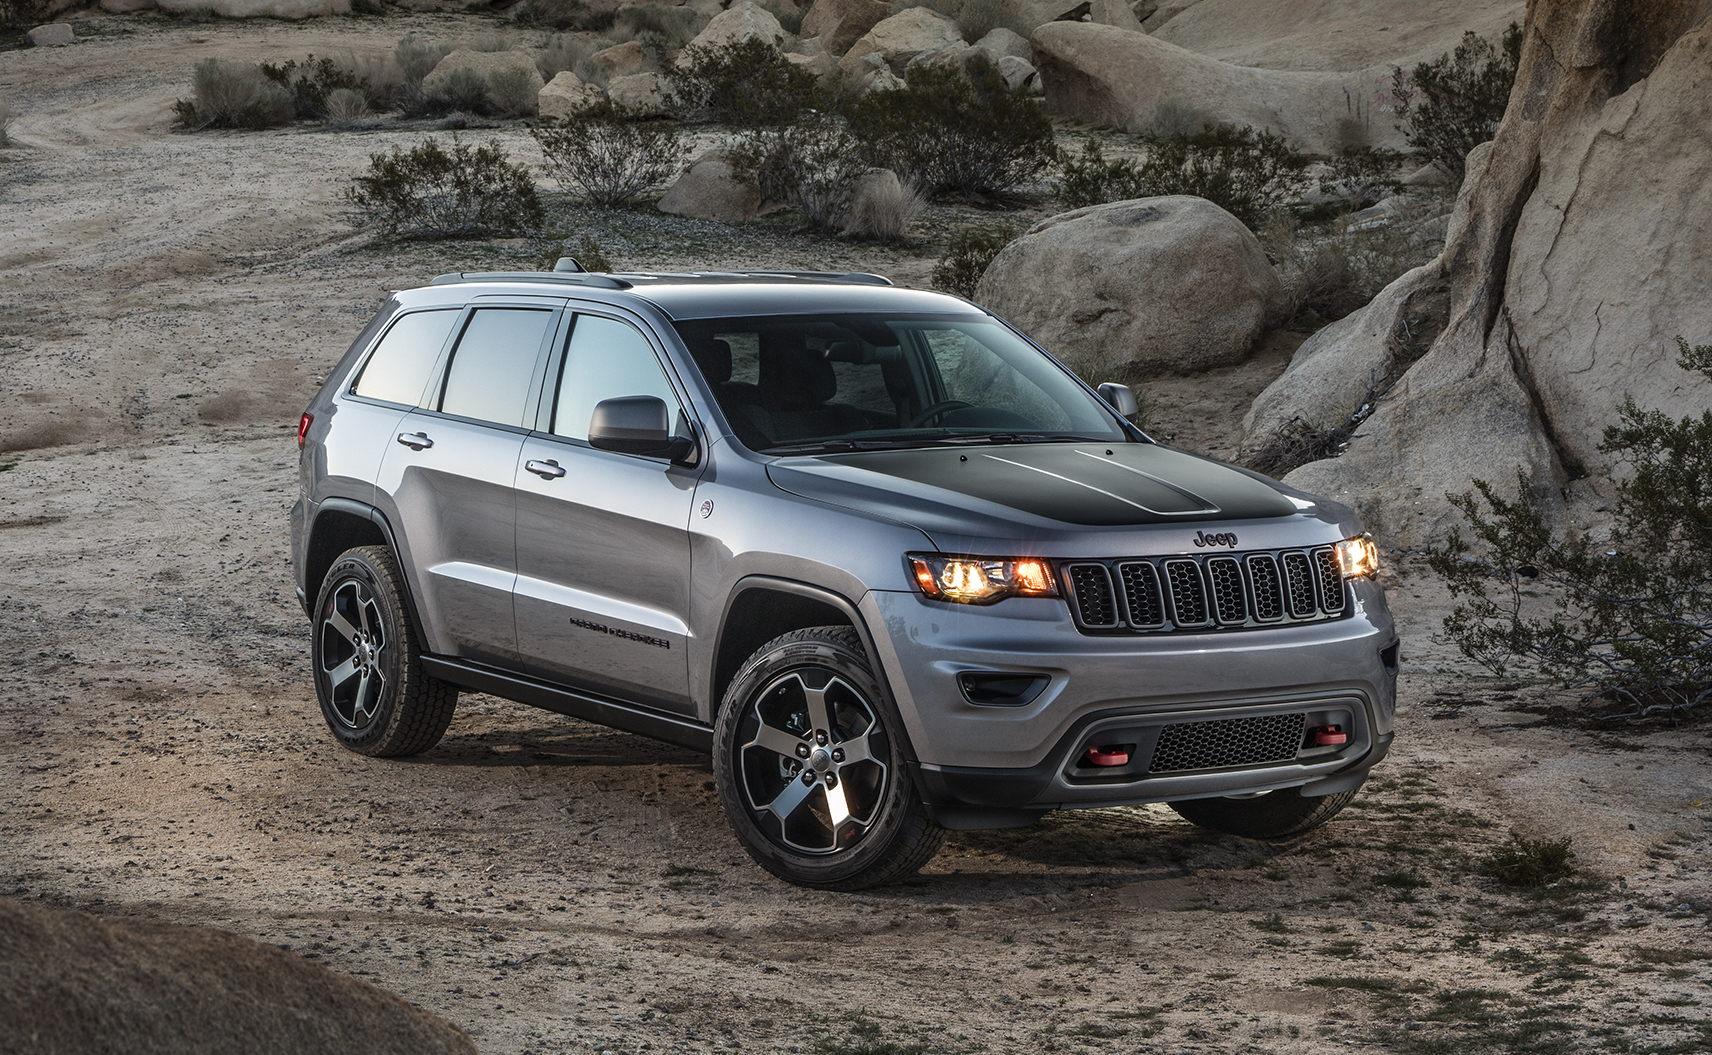 news jeep recalls 62 grand cherokee suvs over fire risk. Black Bedroom Furniture Sets. Home Design Ideas